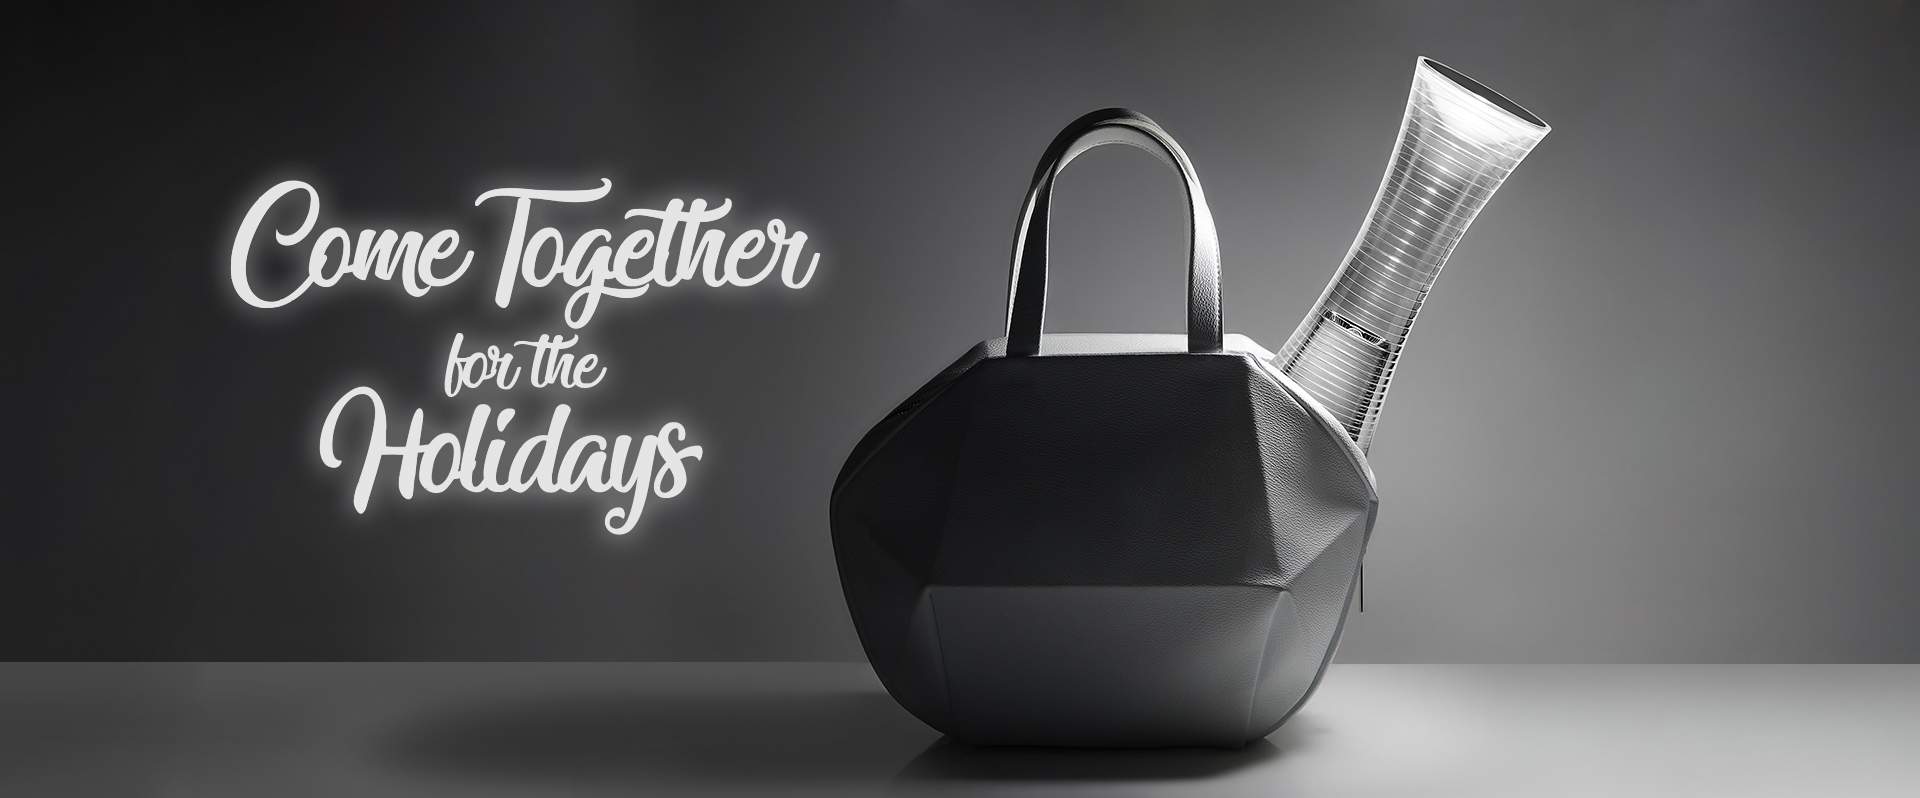 Artemide-Come-Together-Holidays-gift-Idea